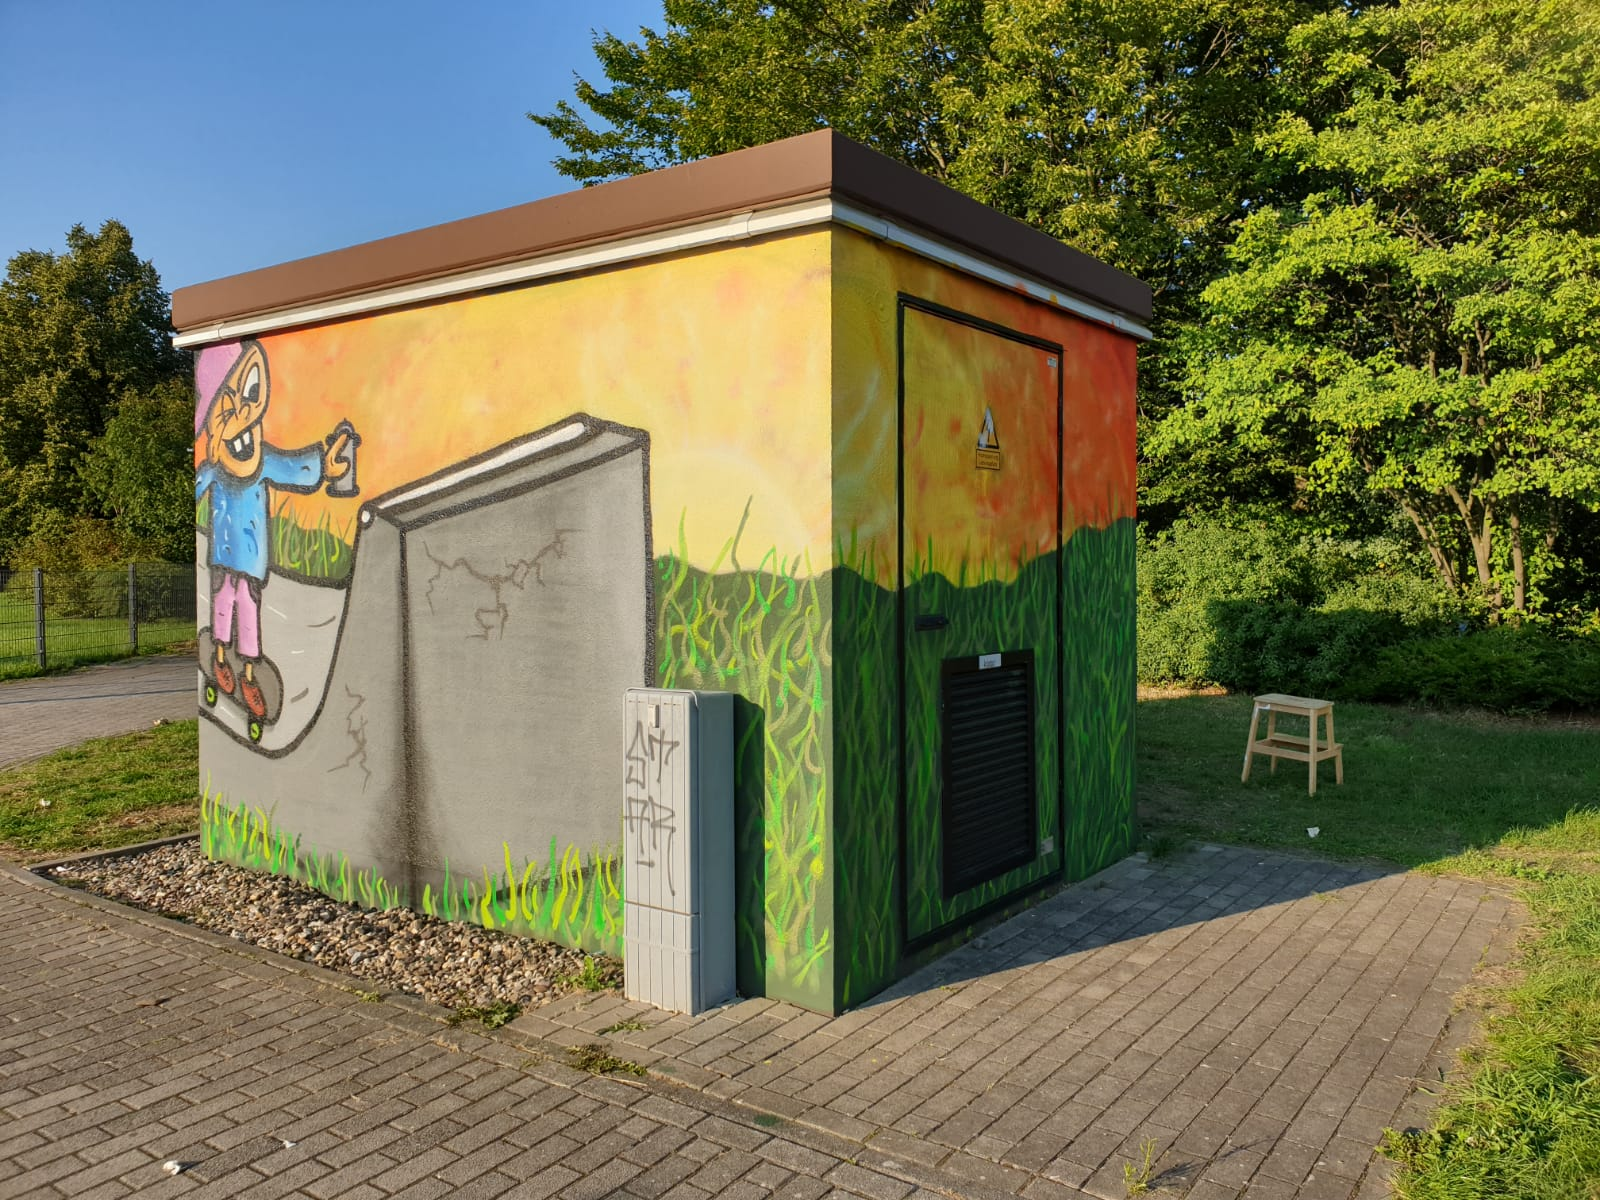 jugendkulturjahr-2020-ratingen-jkj2020-graffiti